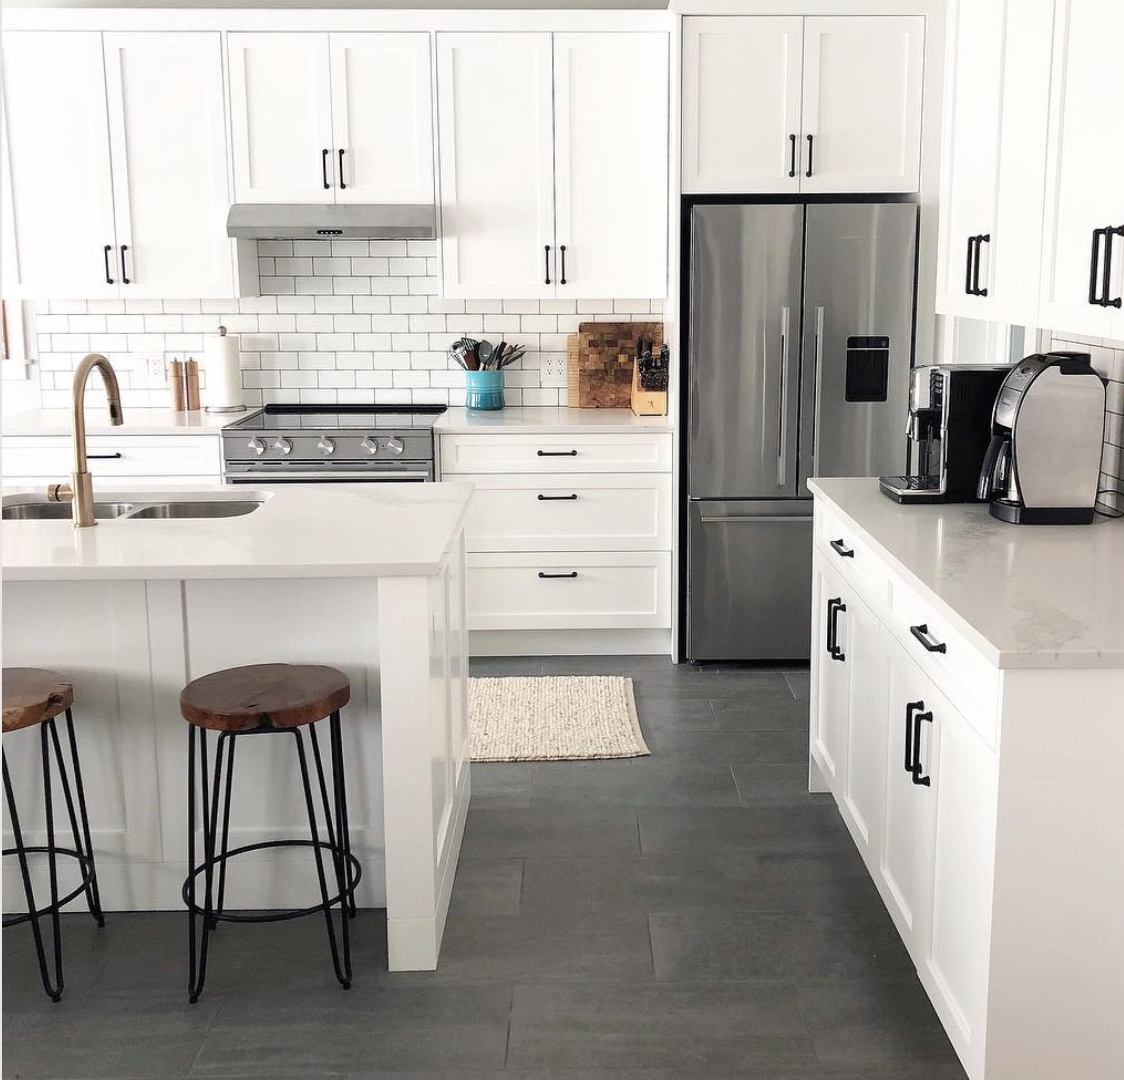 Farmhouse goals! A bright white kitchen toned down with